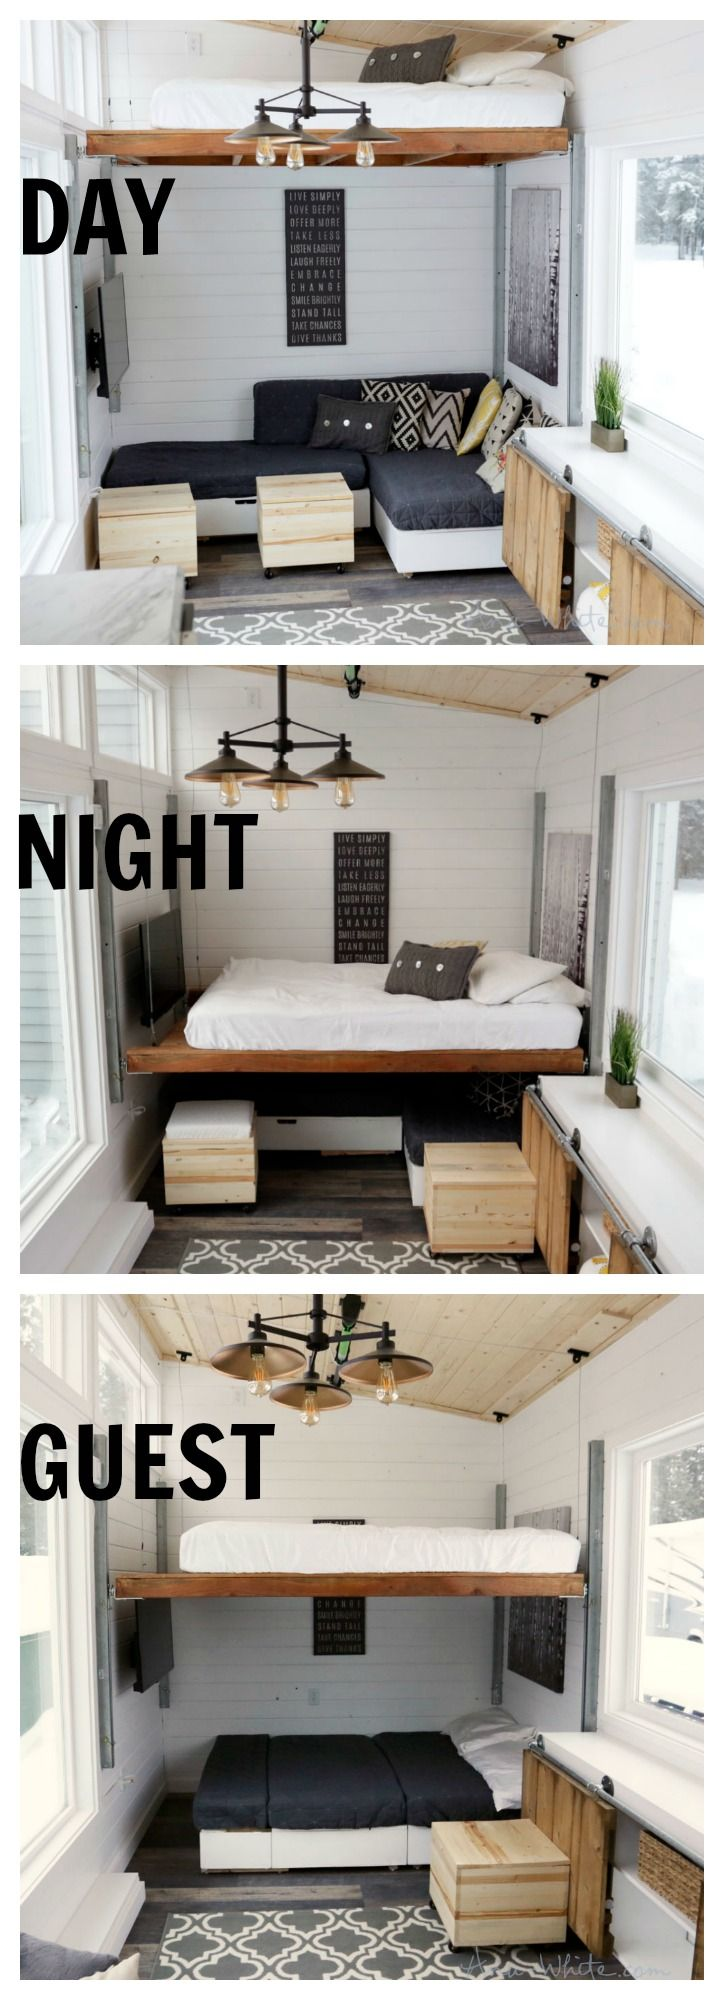 small home design ideas. Open Concept Rustic Modern Tiny House Photo Tour and Sources  Ana White Woodworking Projects Best 25 Small house interior design ideas on Pinterest